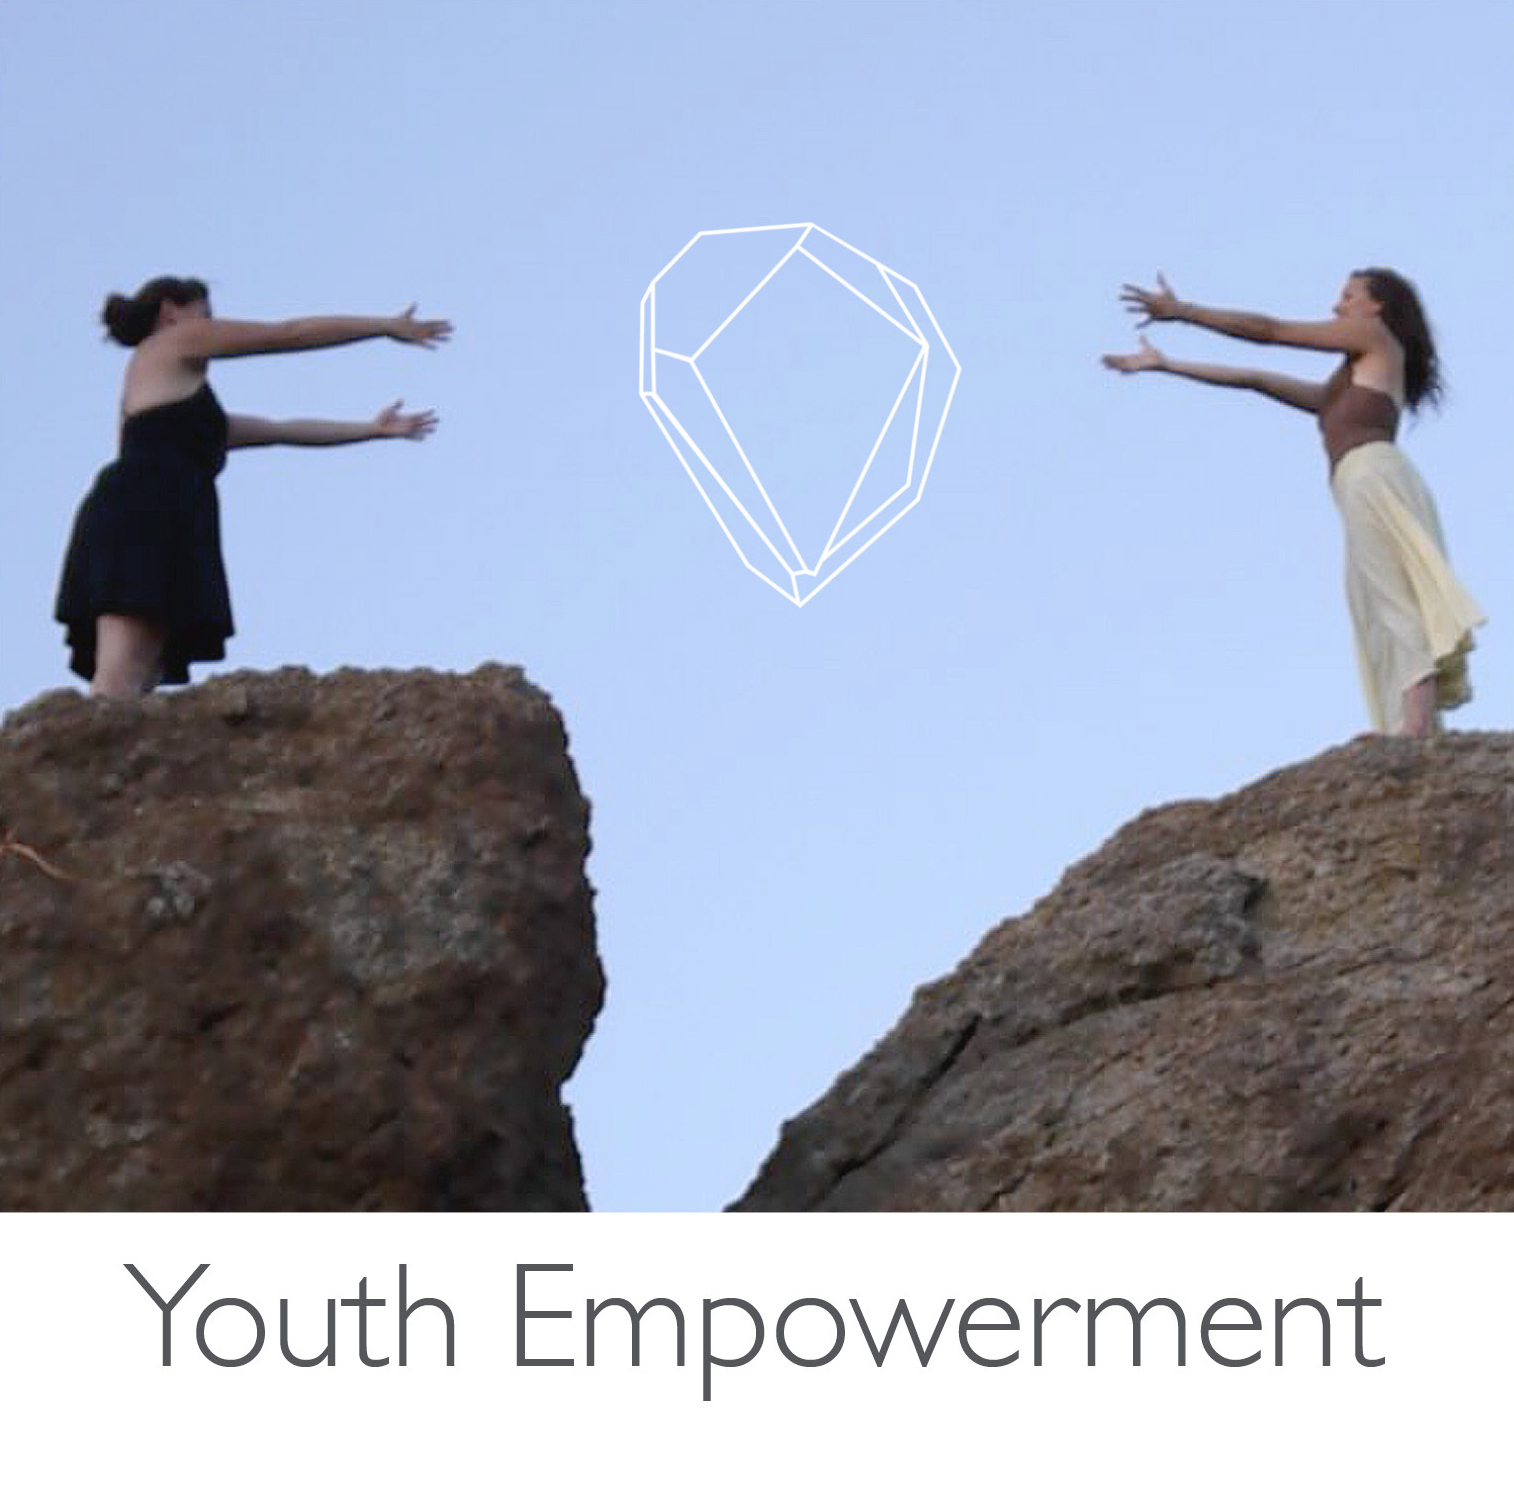 Youth_Empowerment_square.jpg